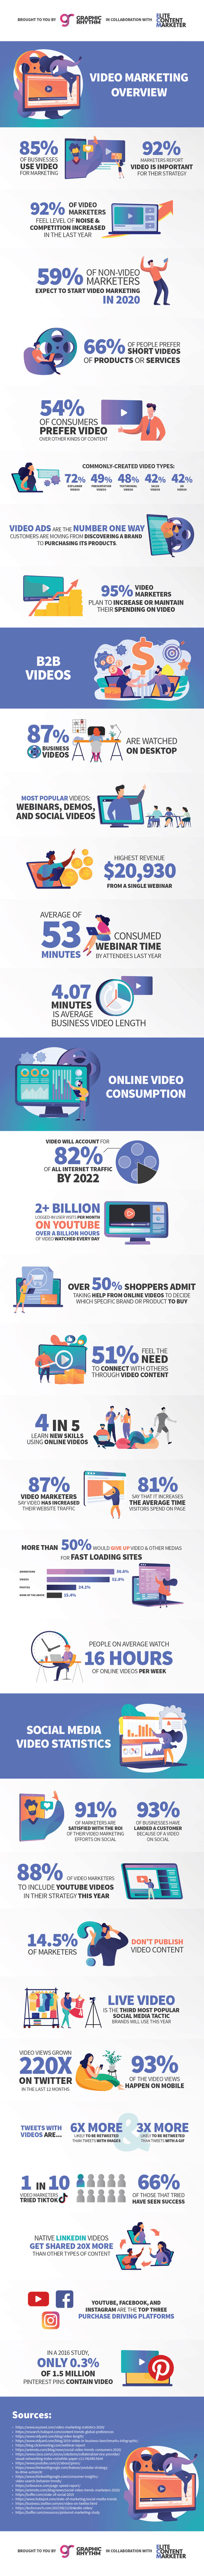 Learn about how marketers use video marketing in 2020, in this great infographic!